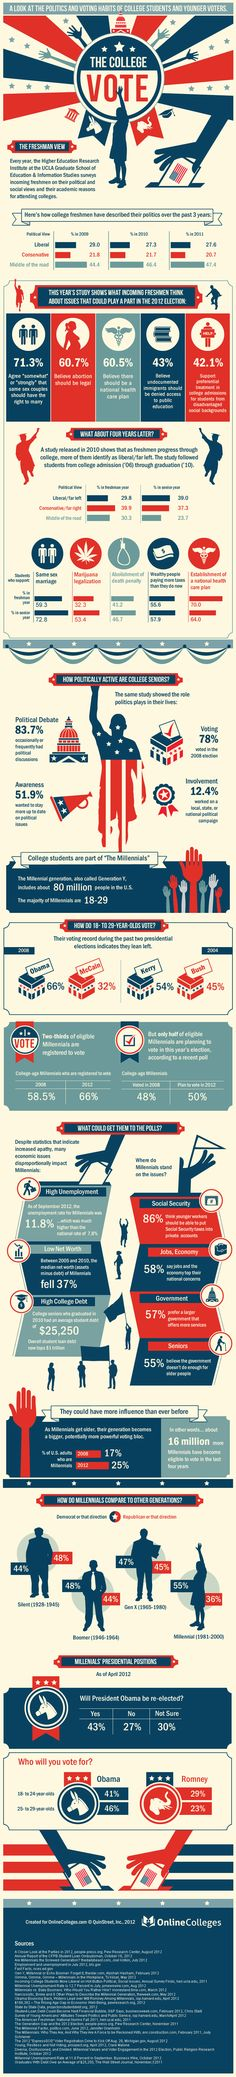 Infographic: The #College Vote (#politics and voting habits of college students & younger voters)